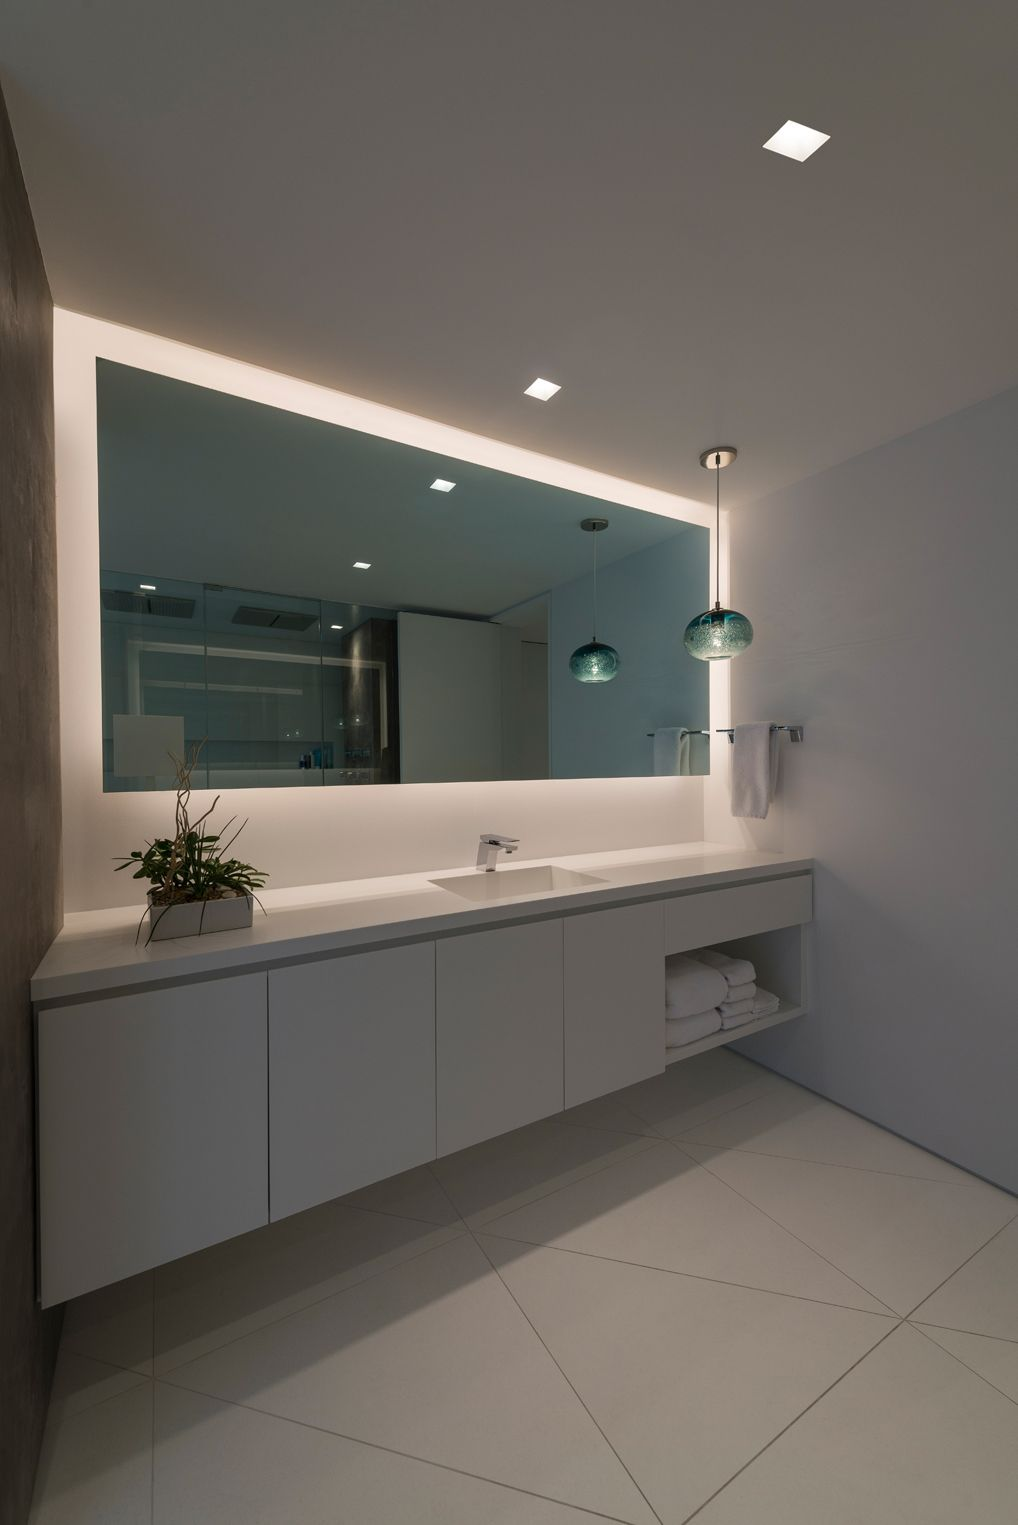 browse a large selection of bathroom vanity mirror designs including frameless beveled and lighted bathroom wall mirrors in all shapes - Modern Bathroom Mirrors